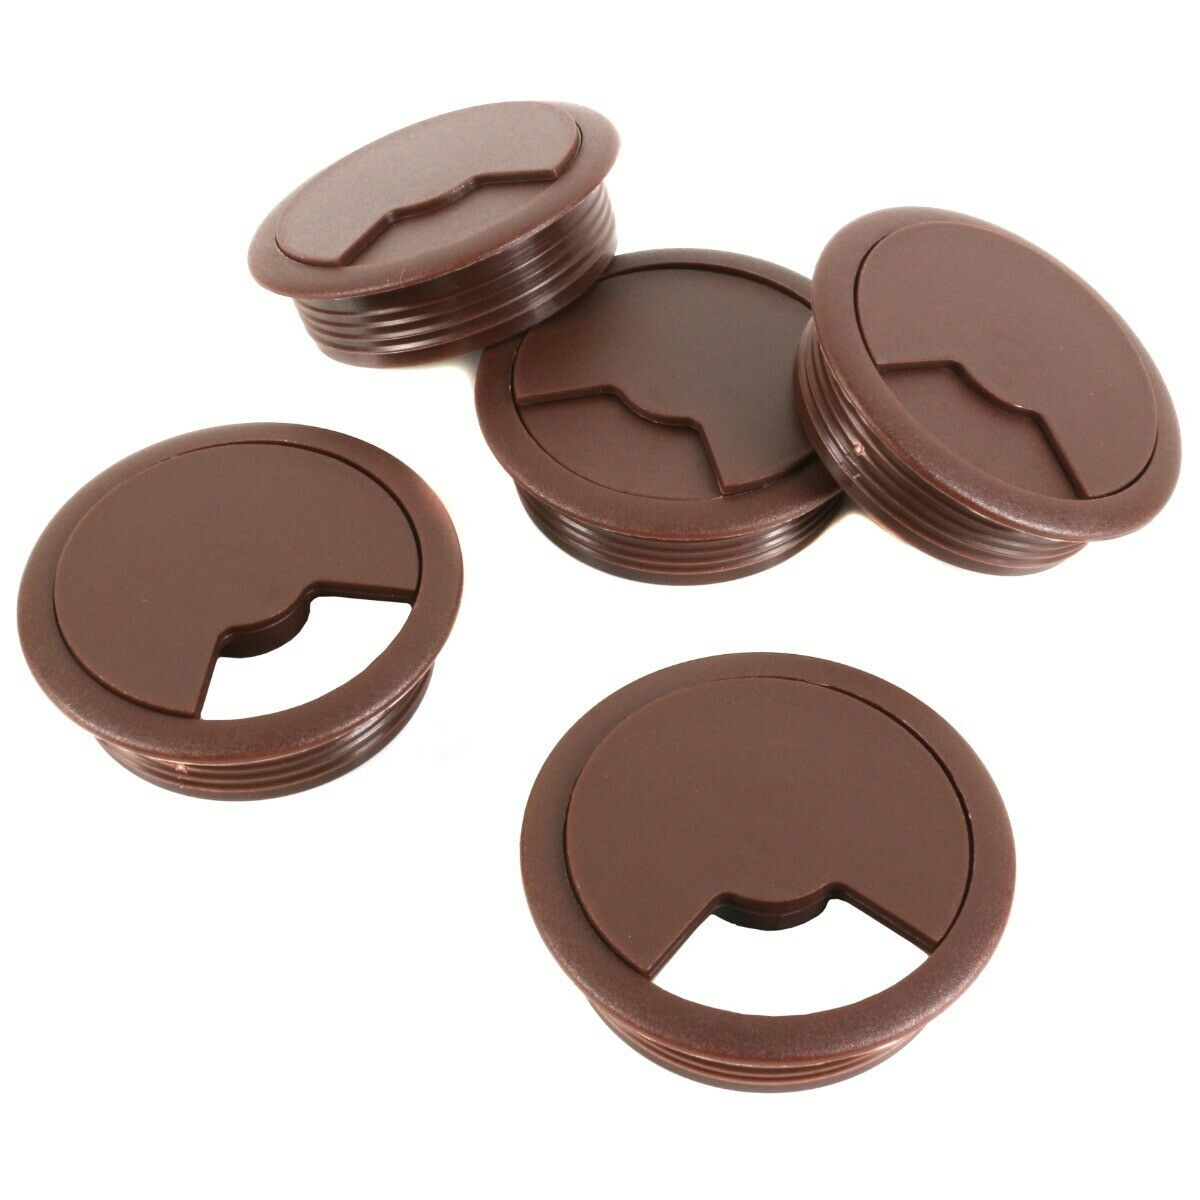 5x OFFICE DESK GROMMETS 60mm Small Surface Cable Outlet Hole Cover Dark Brown UK